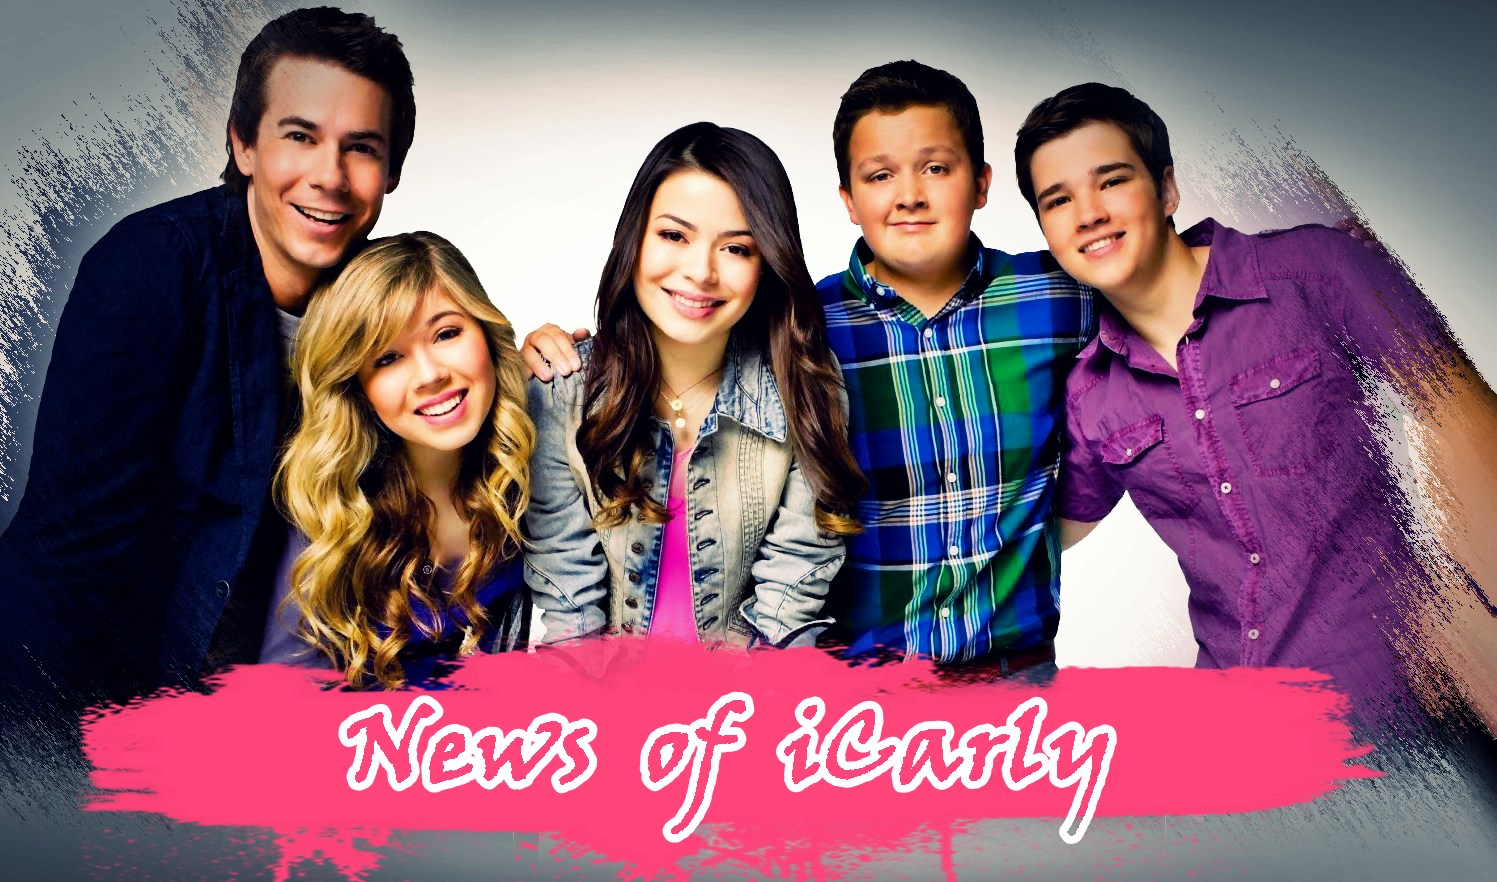 News of iCarly